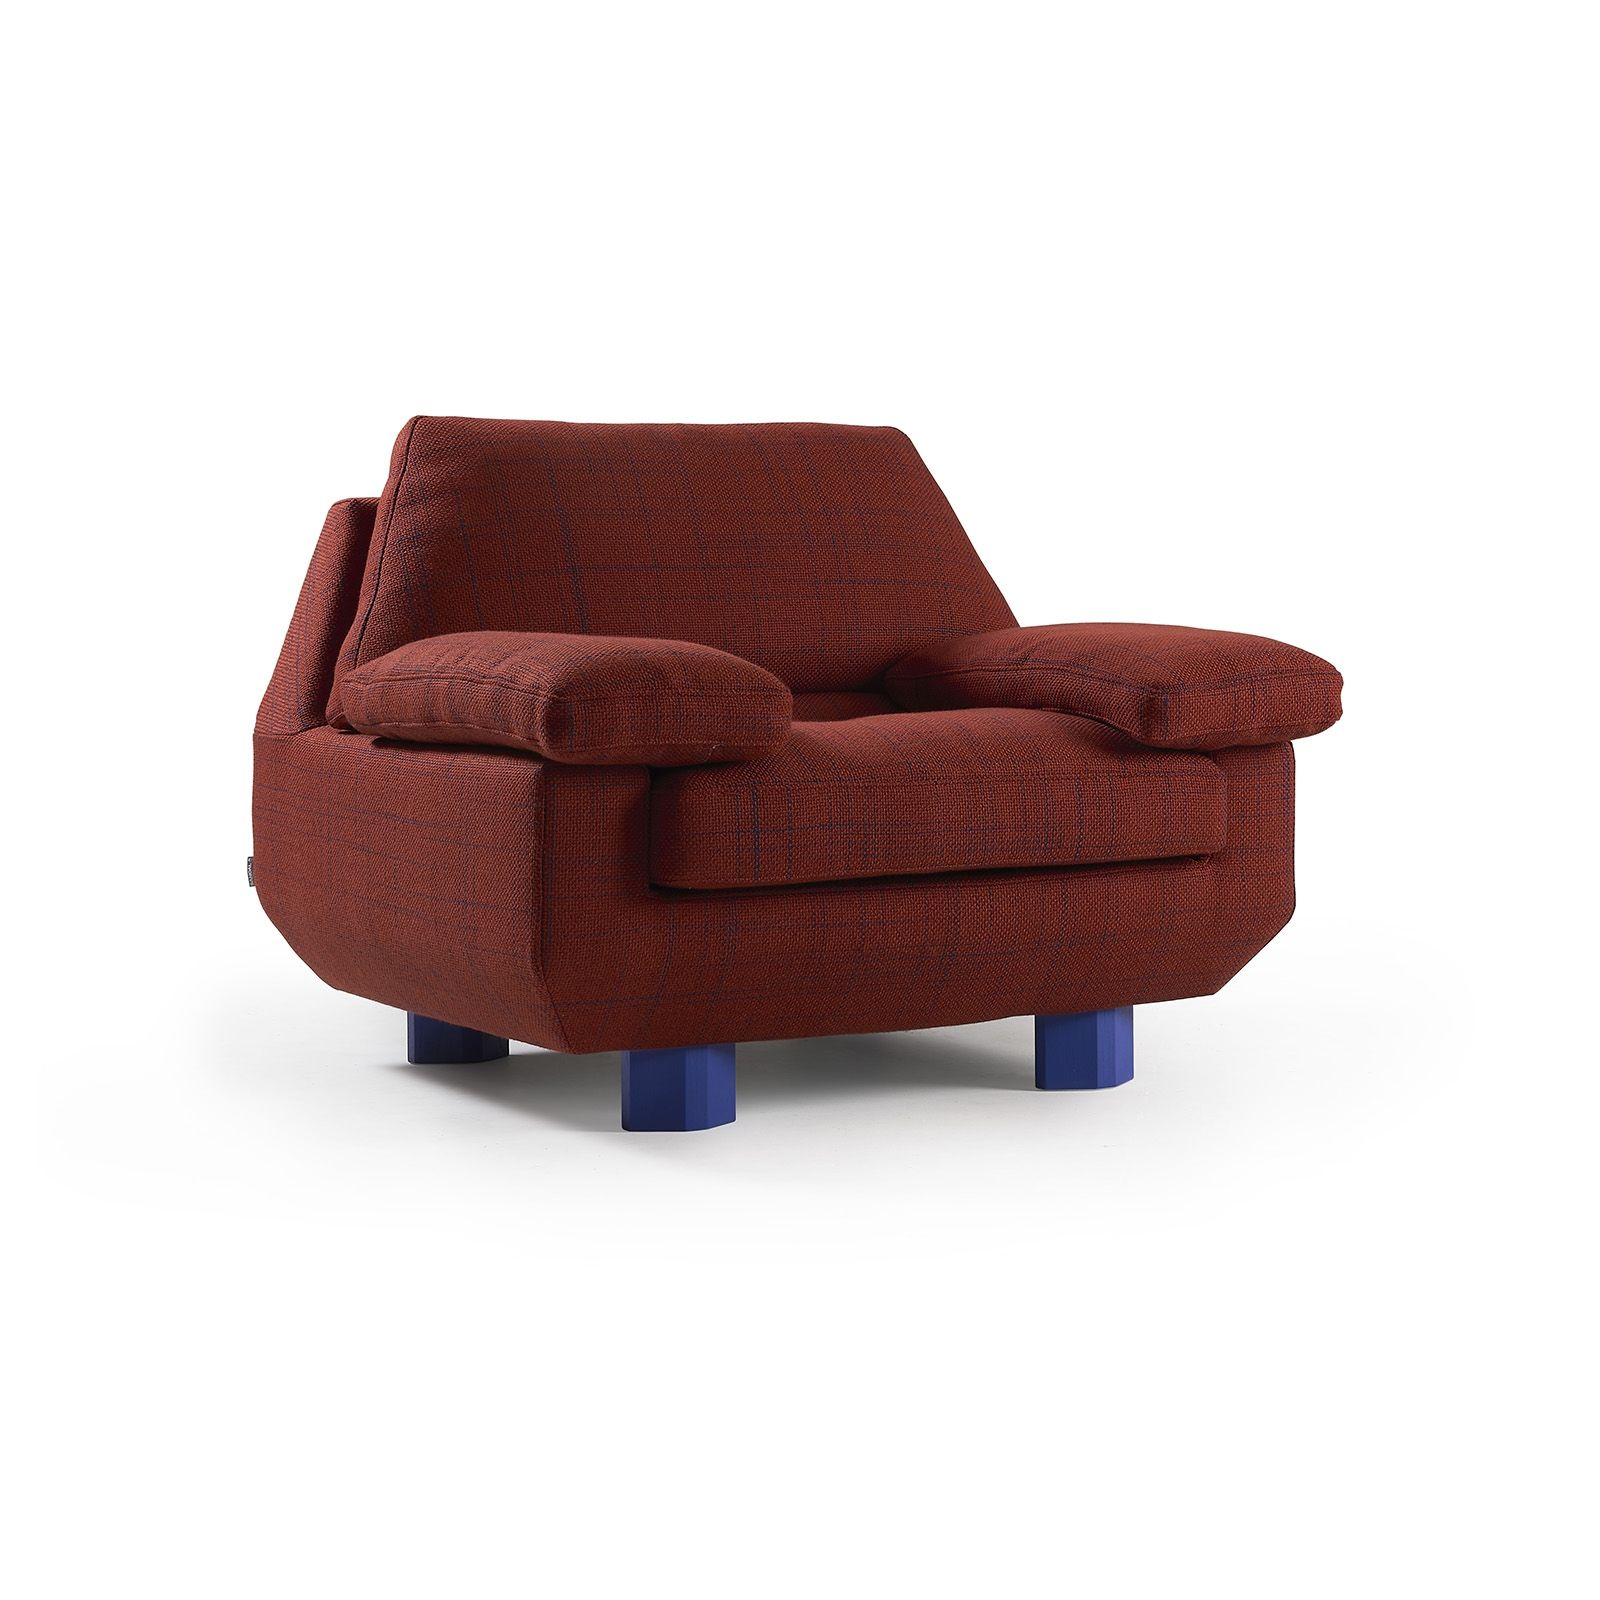 DB LOUNGE CHAIR